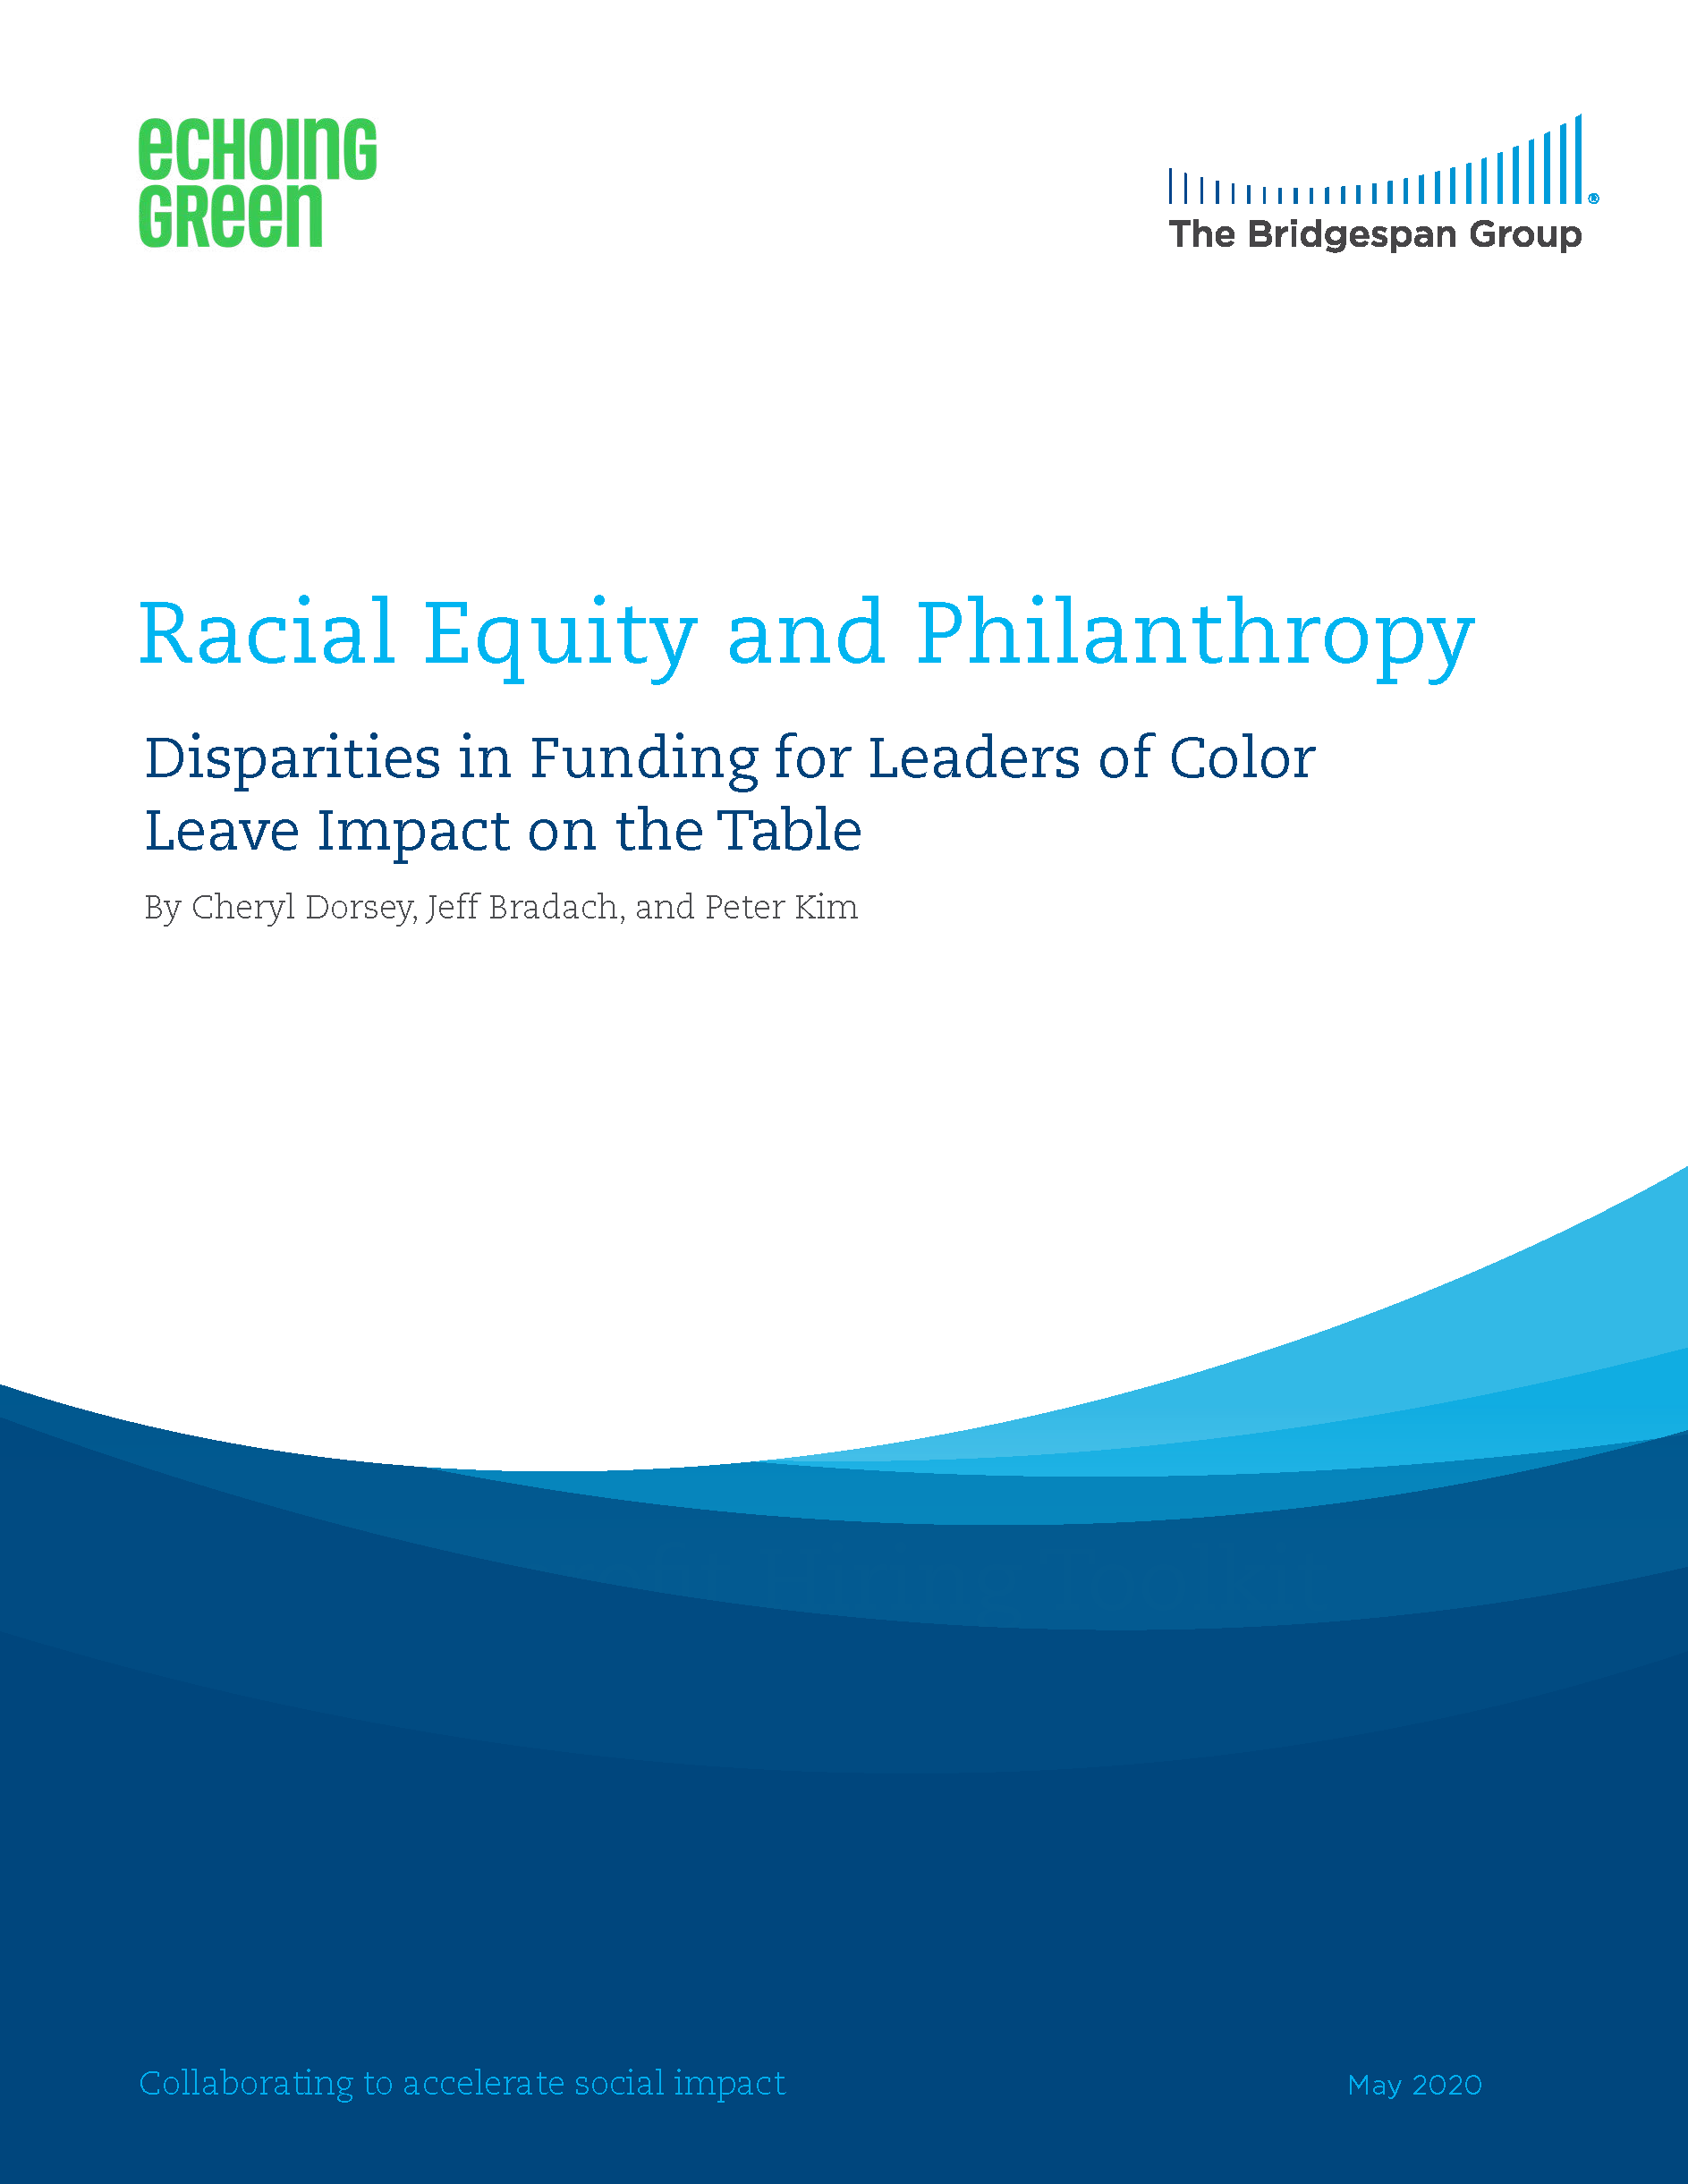 Racial Equity & Philanthropy